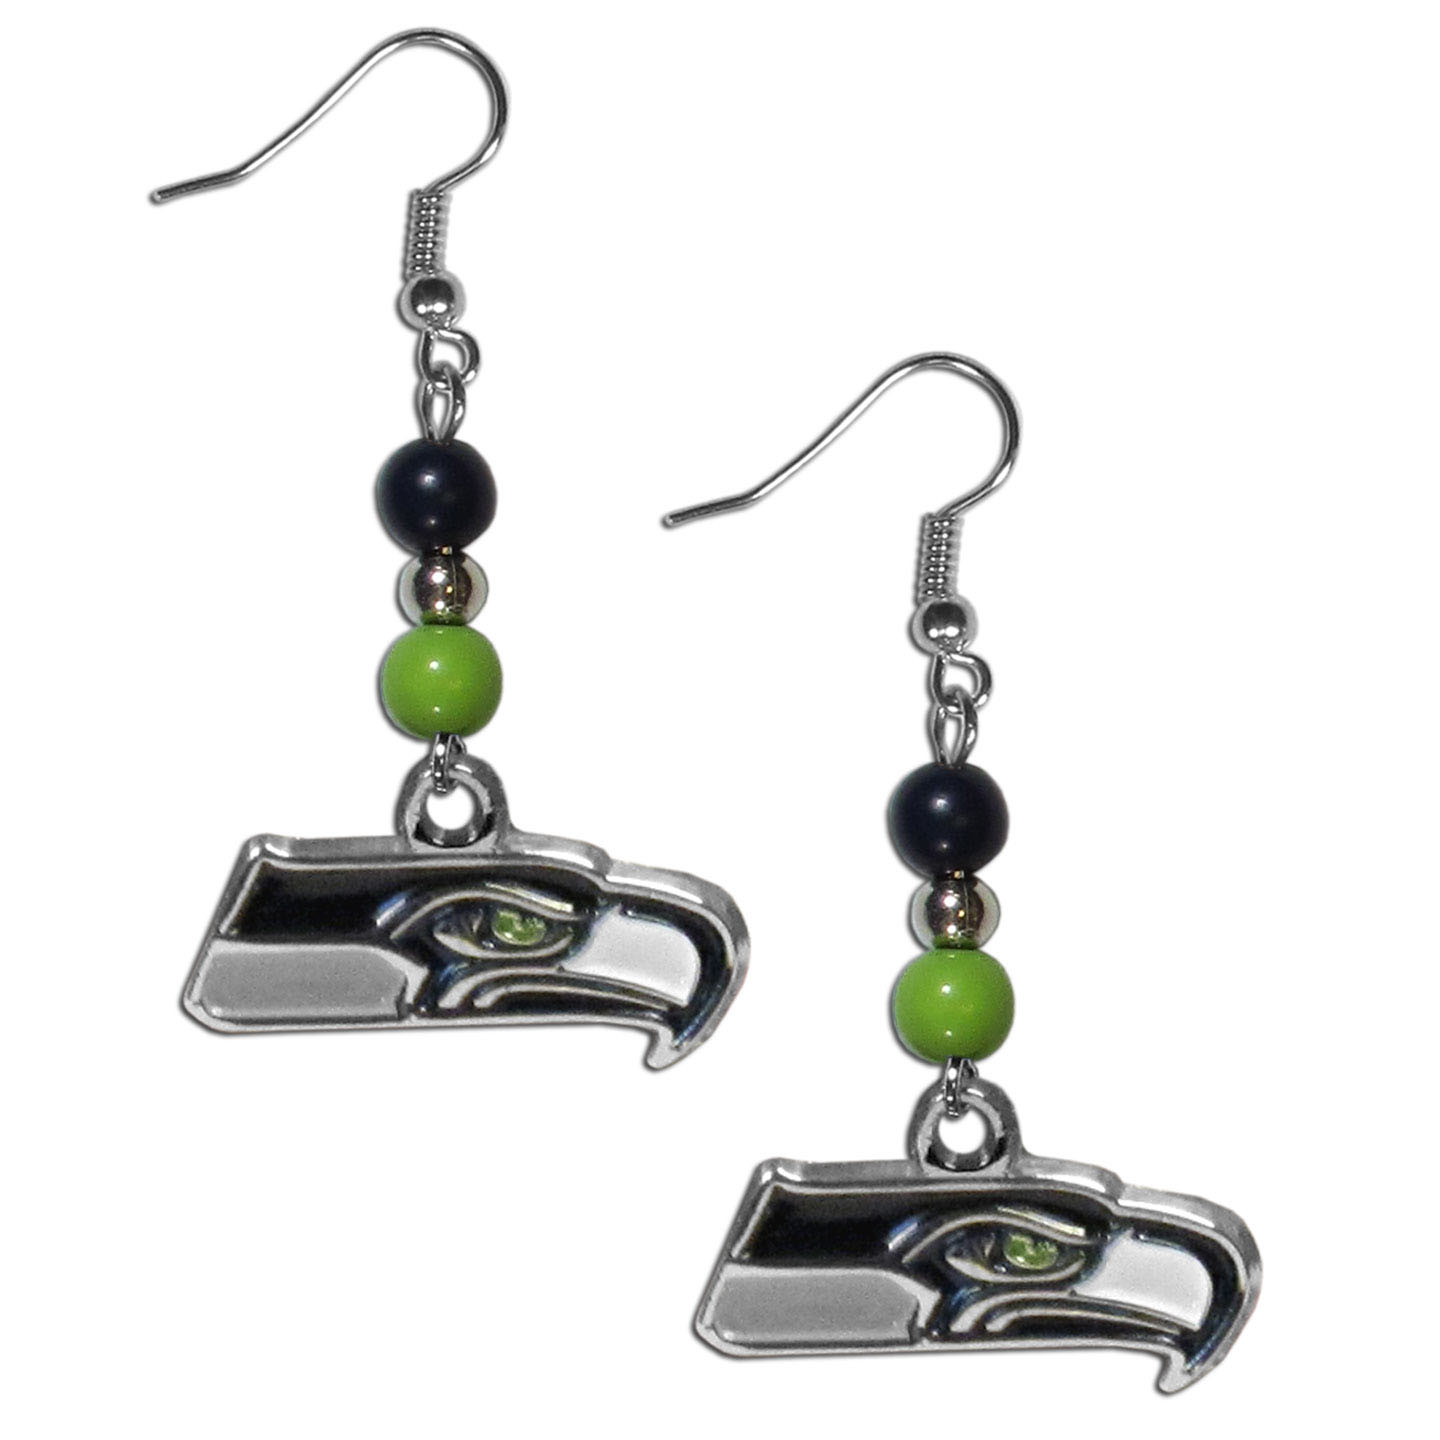 Seattle Seahawks Fan Bead Dangle Earrings - Love your team, show it off with our Seattle Seahawks bead dangle earrings! These super cute earrings hang approximately 2 inches and features 2 team colored beads and a high polish team charm. A must have for game day!